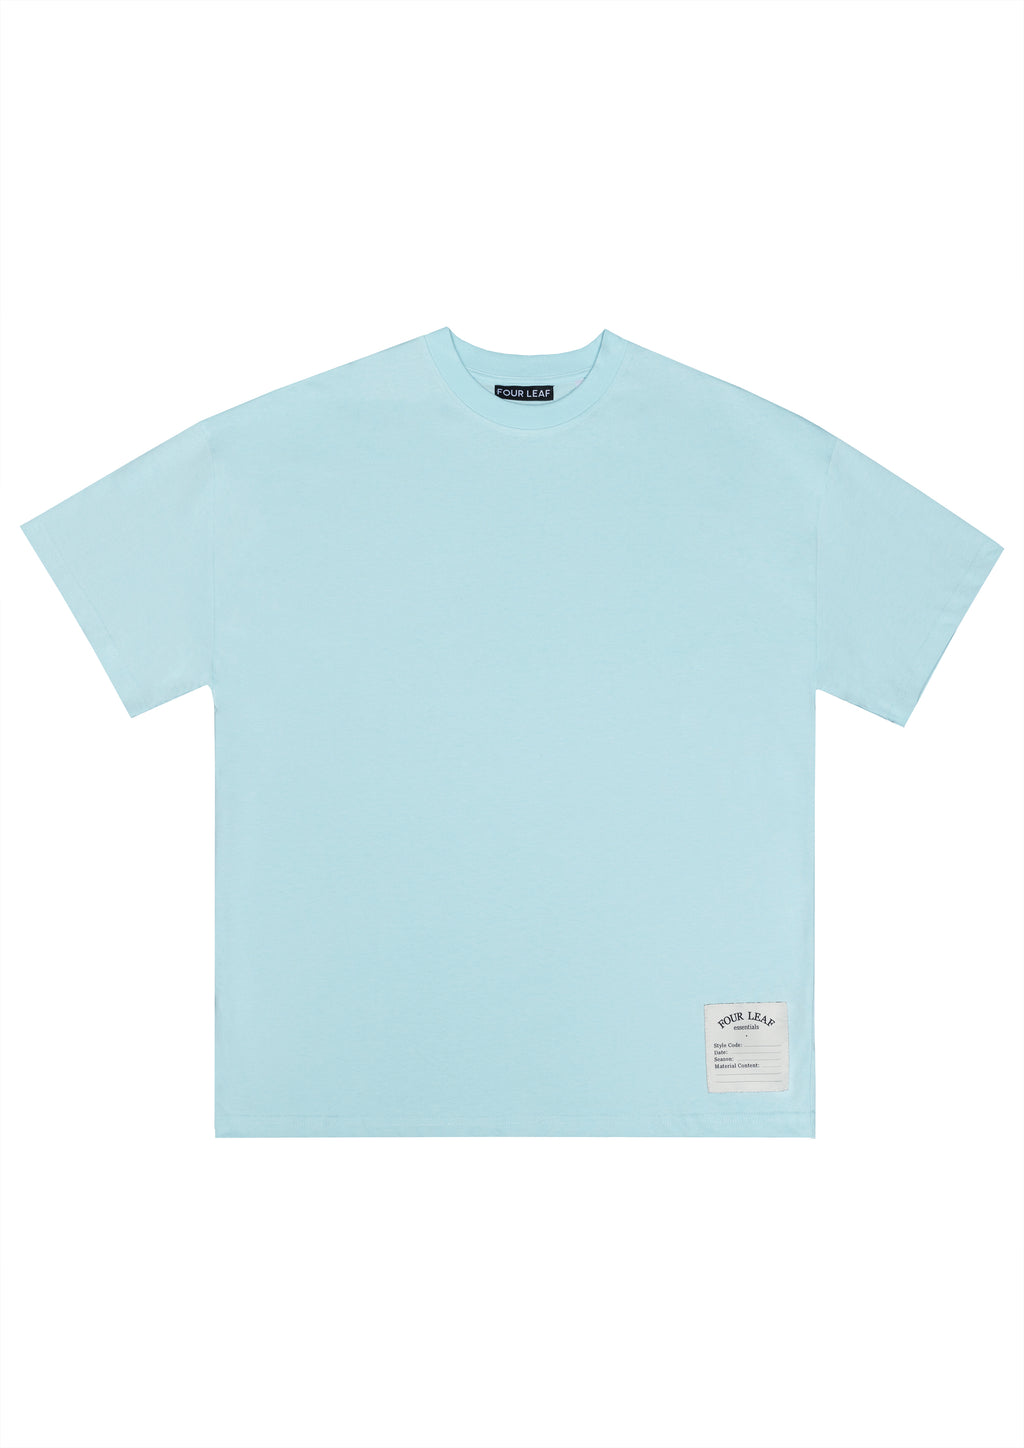 BURTON-PORT TEE BLUE WOMENS